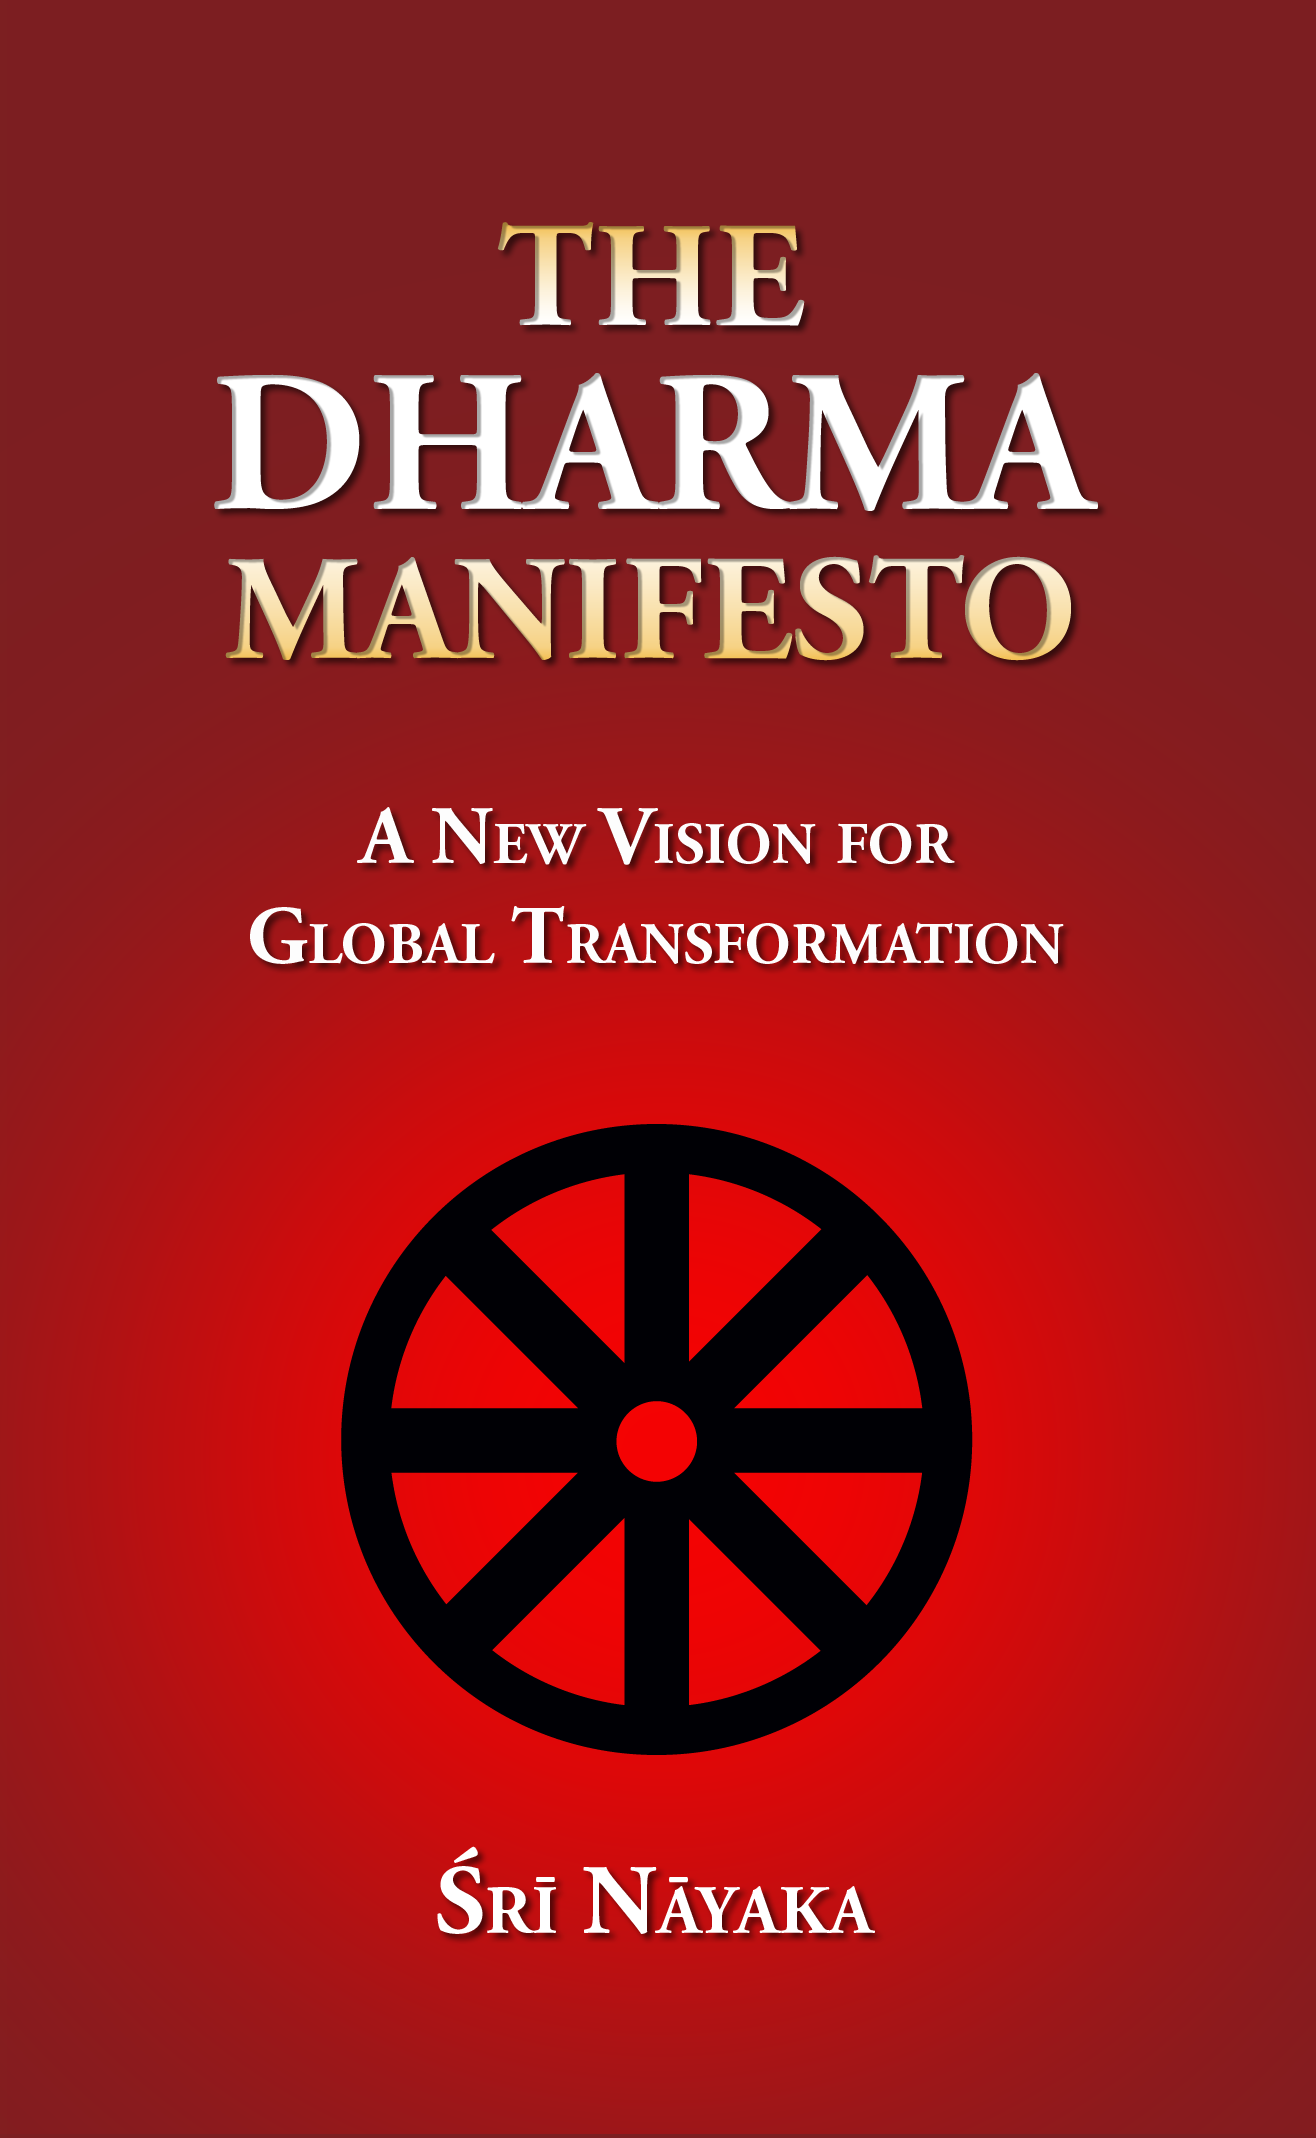 The Dharma Manifesto: A New Vision for Global Transformation - By Sri Nayaka - Book Cover